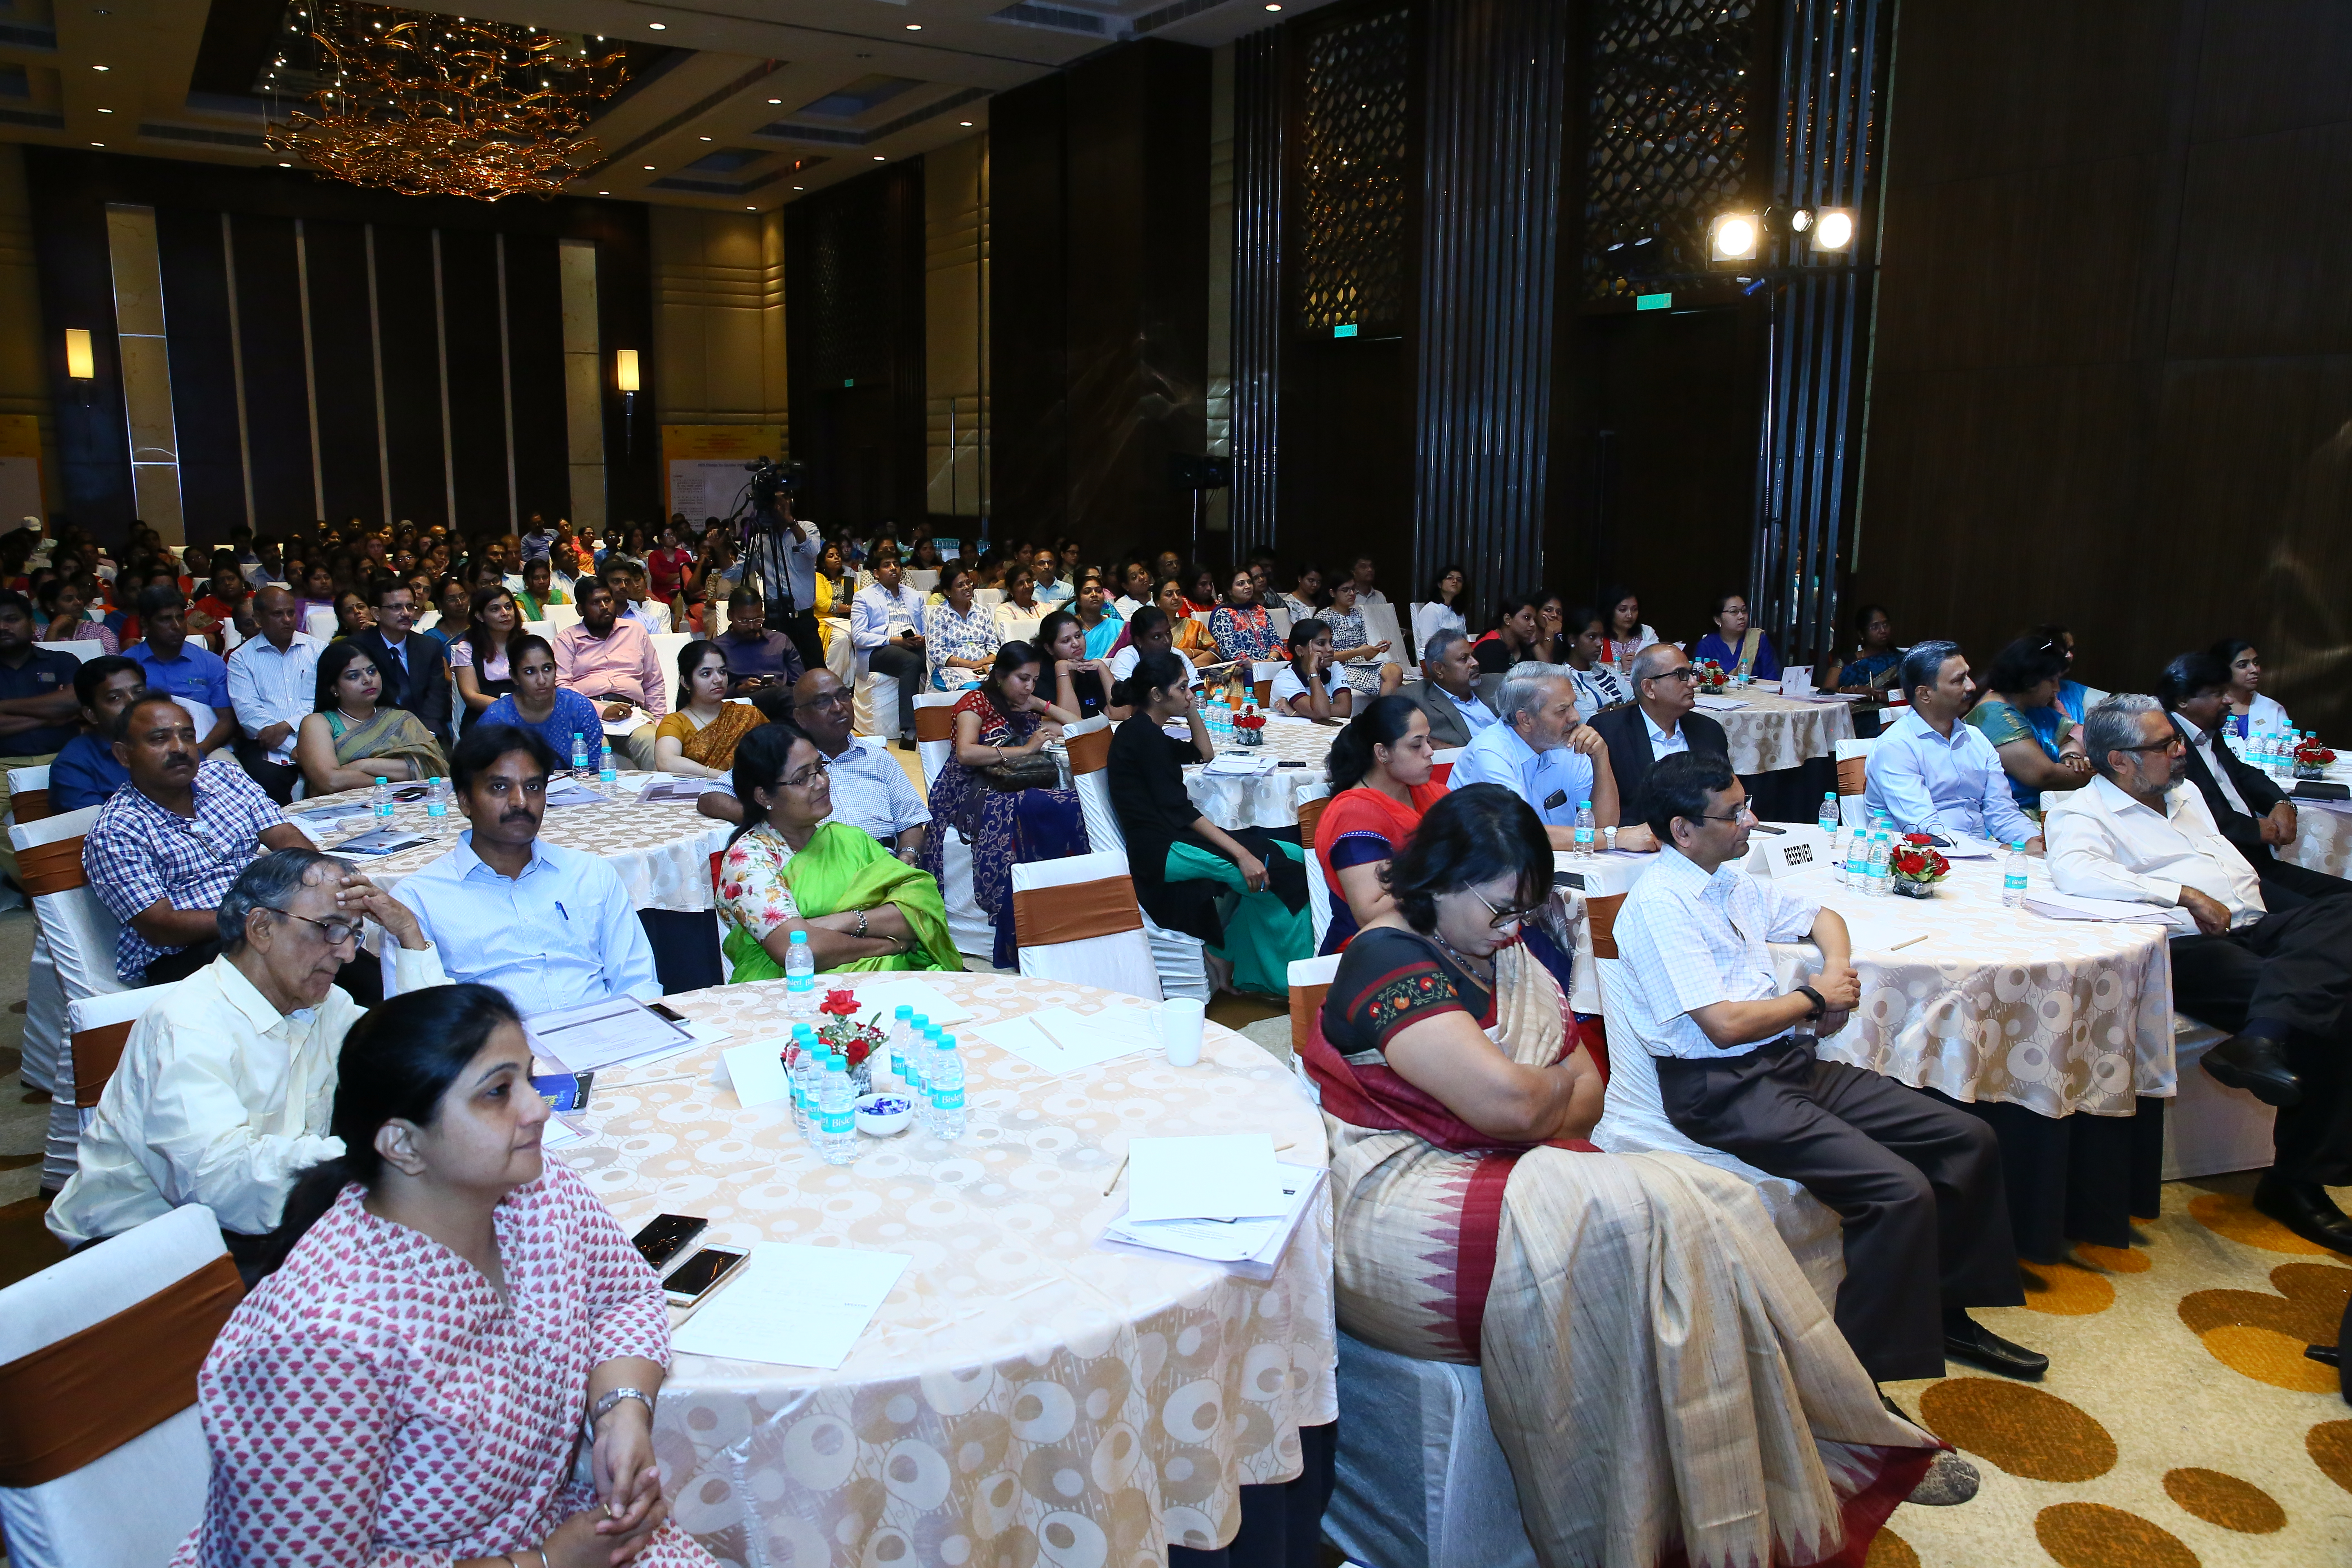 CIIs IWN GENDER PARITY AWARDS  & CONFERENCE ON BRINGING PARITY AT THE WORKPLACE